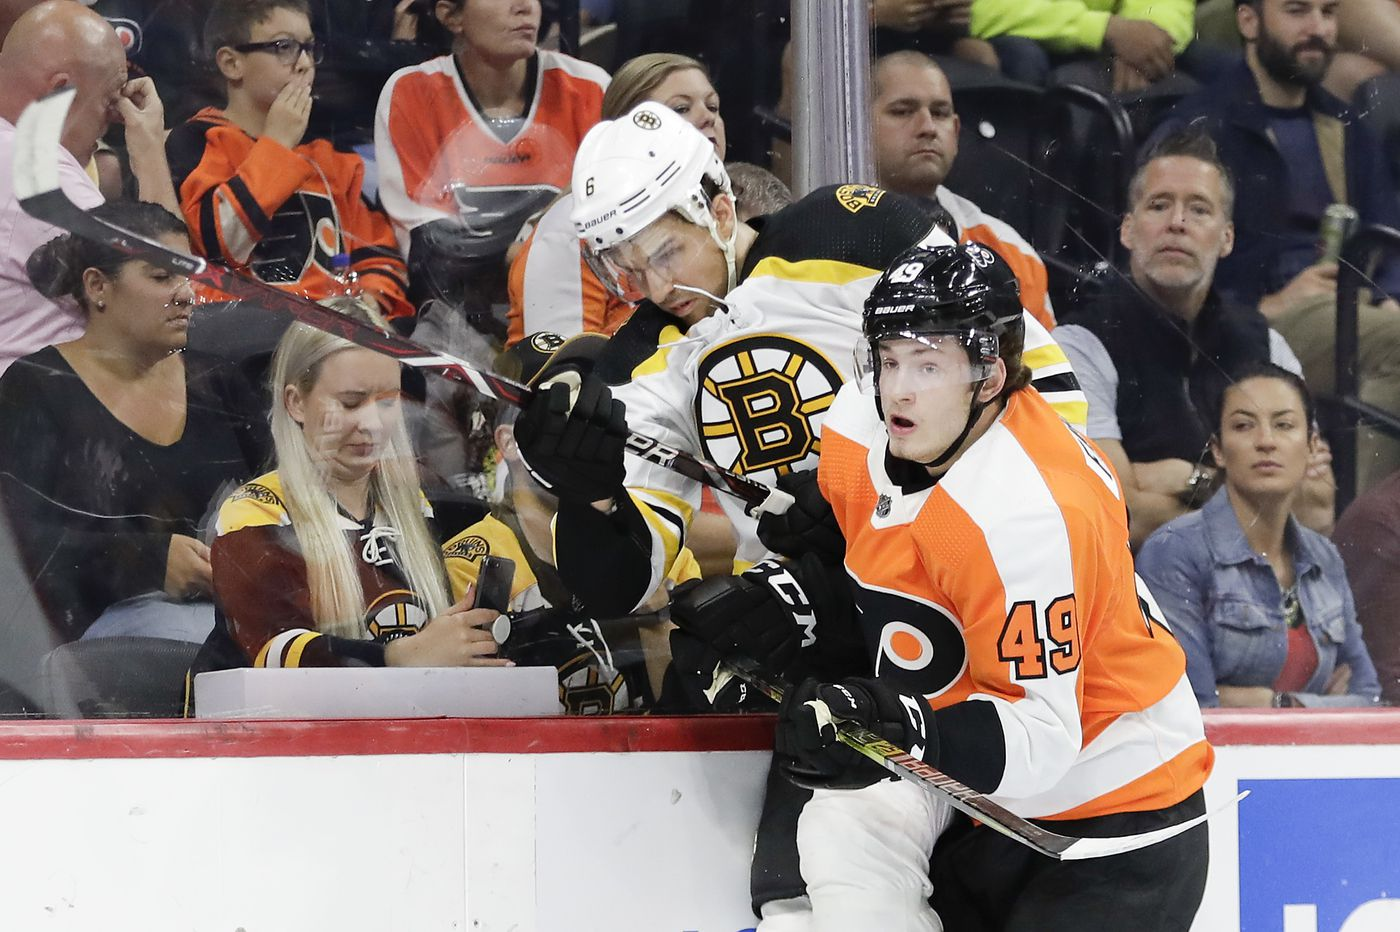 Joel Farabee vows to be 'mentally tough' after being disappointed by Flyers' demotion